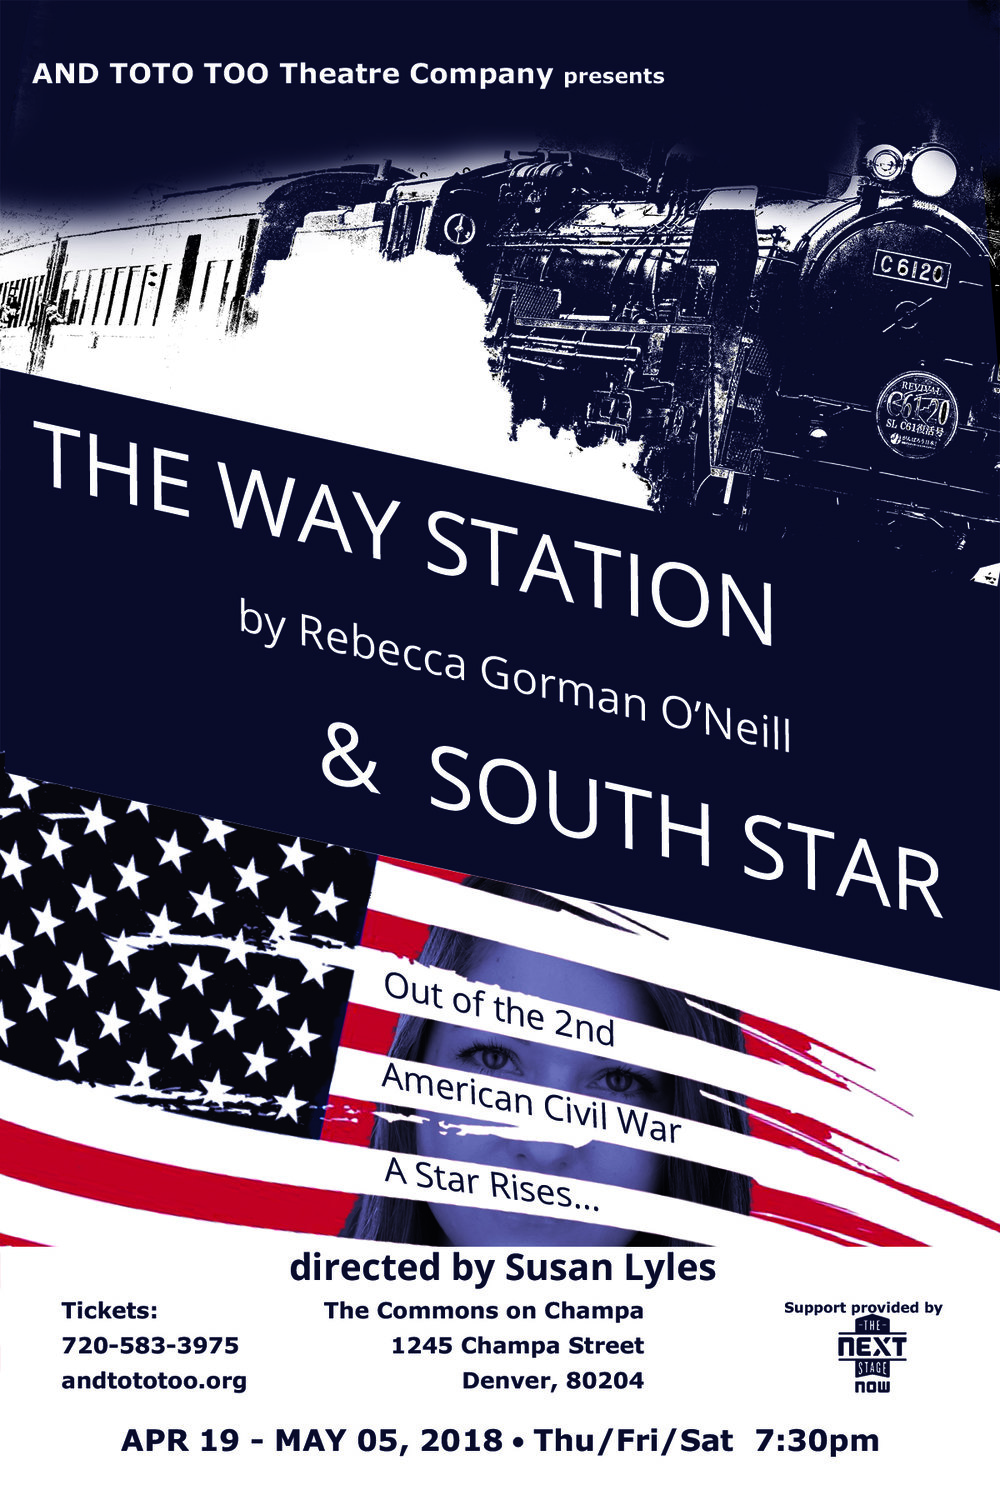 way_station_south_star4x6-2.jpg